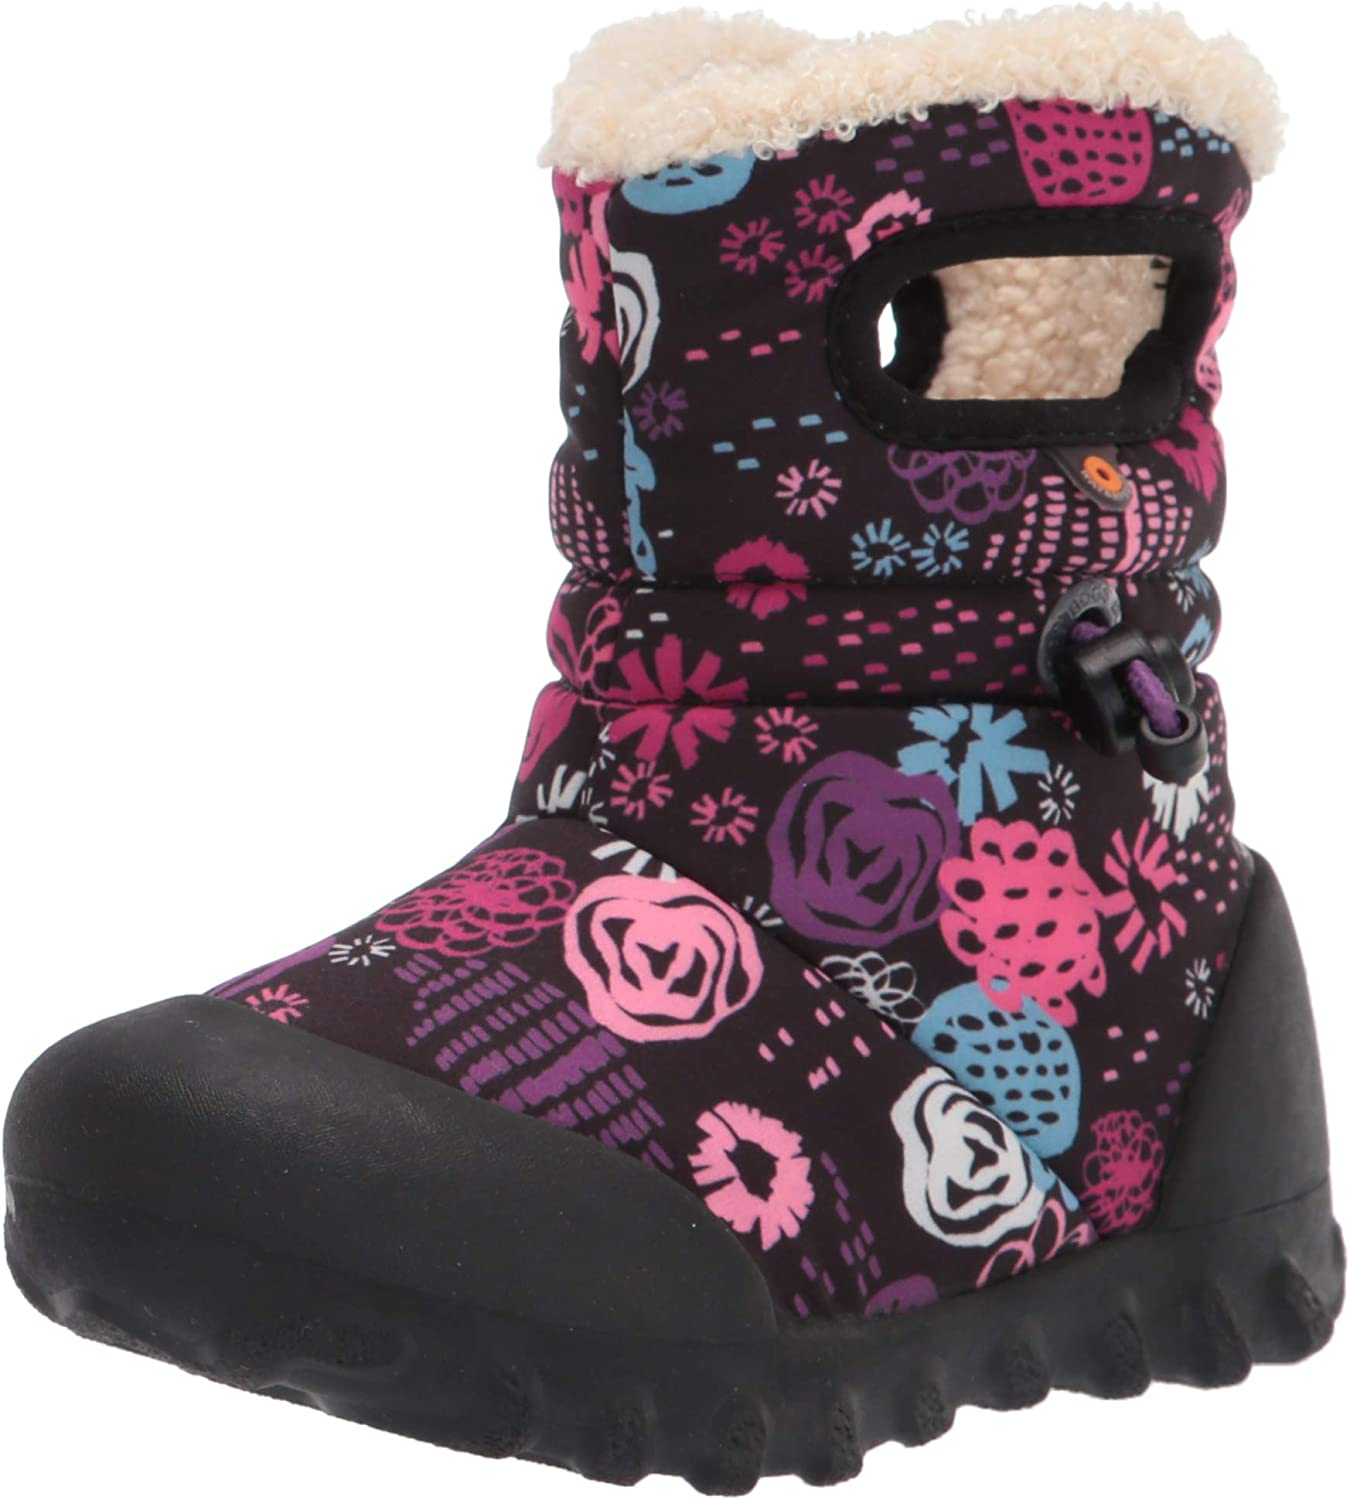 BOGS Unisex-Child B-moc Snow Boot Rain